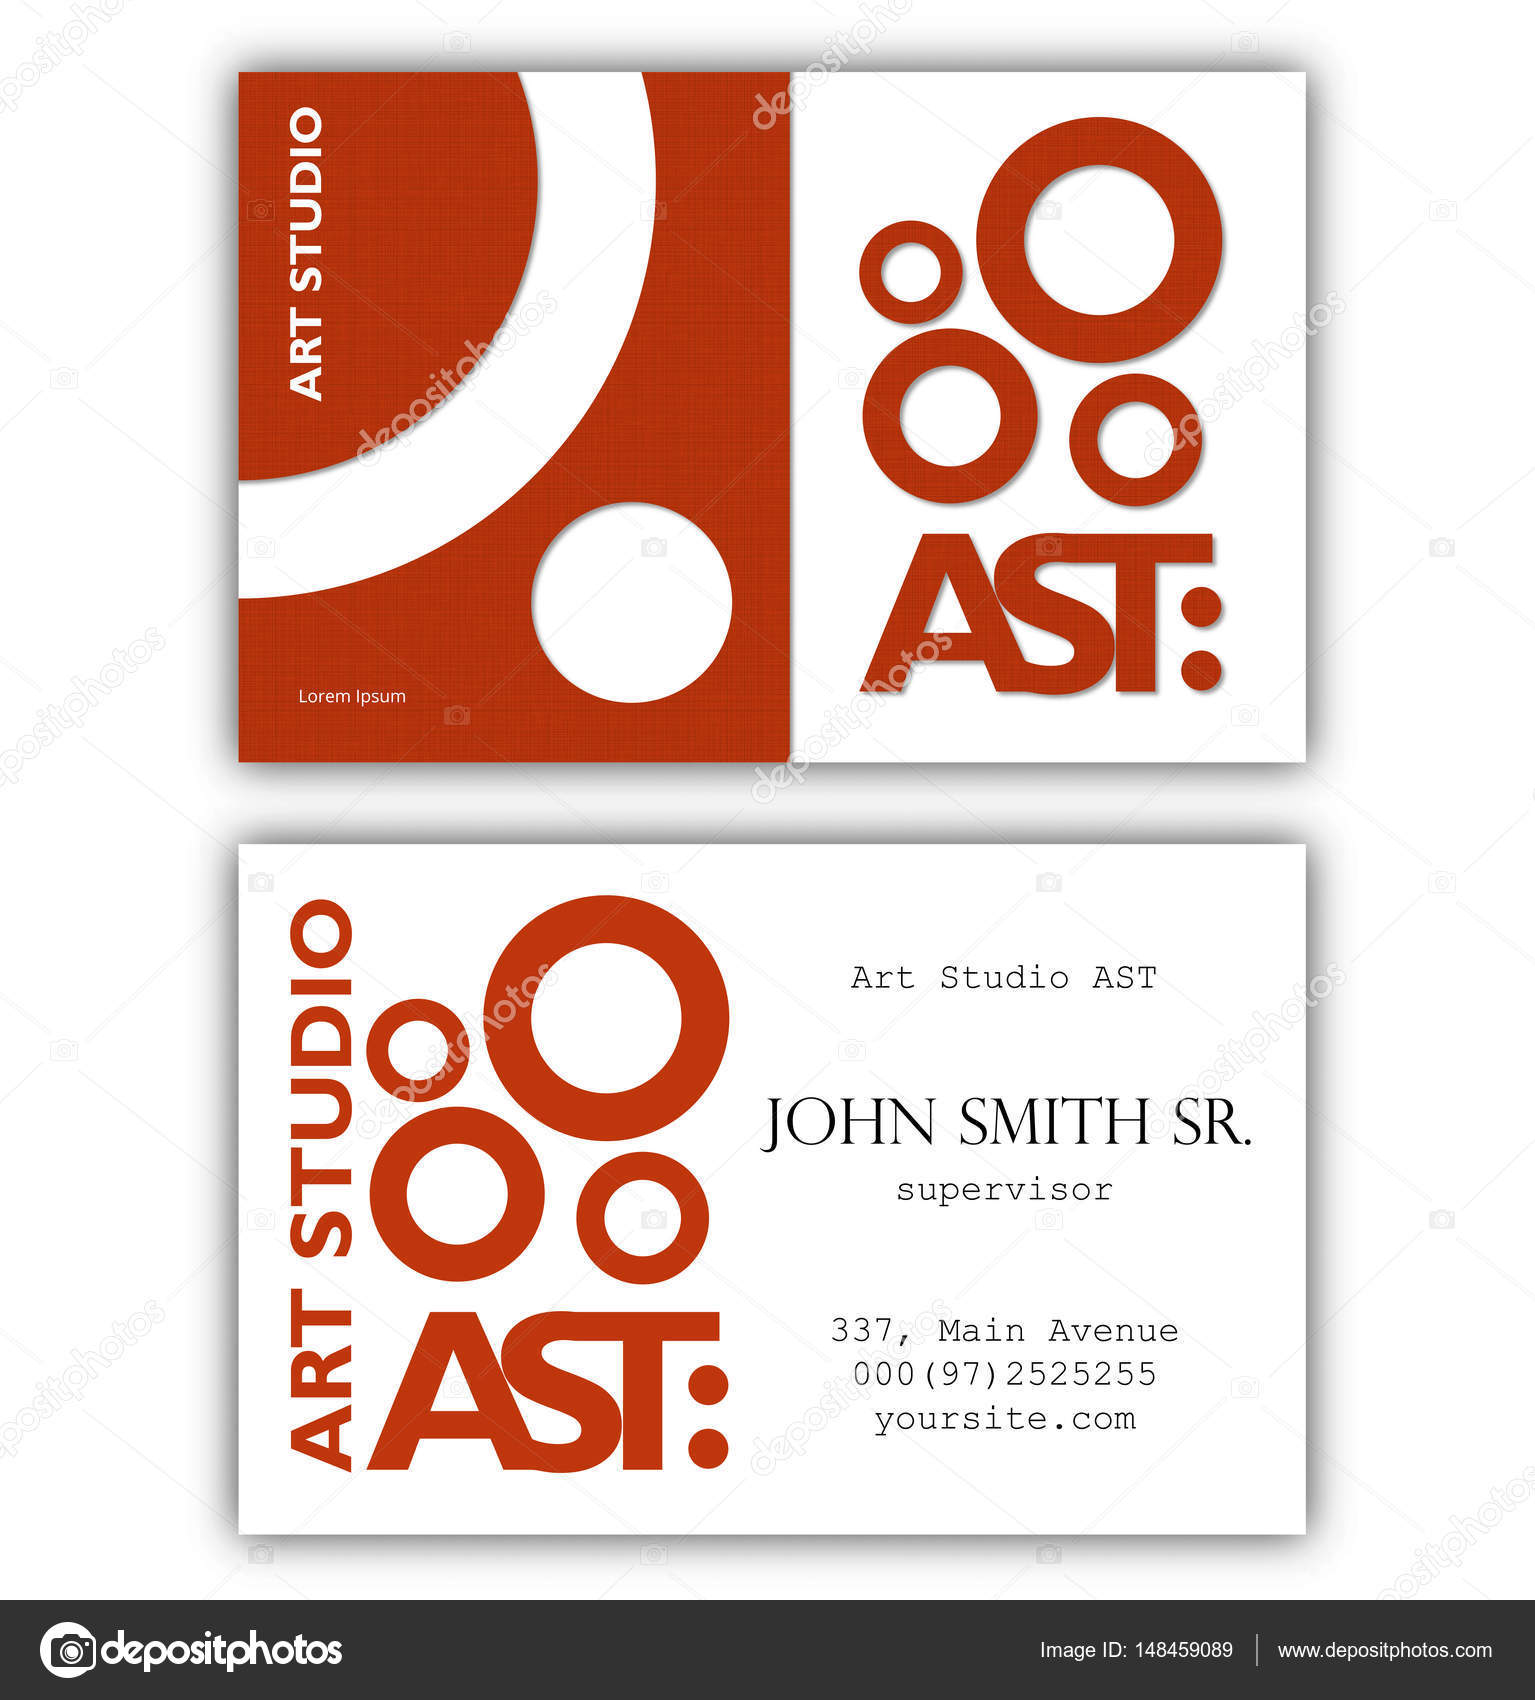 Abstract business card template art studio theme vector illust abstract business card template art studio theme standard size throughout uk and europe vector illustration vector by microvictor reheart Image collections